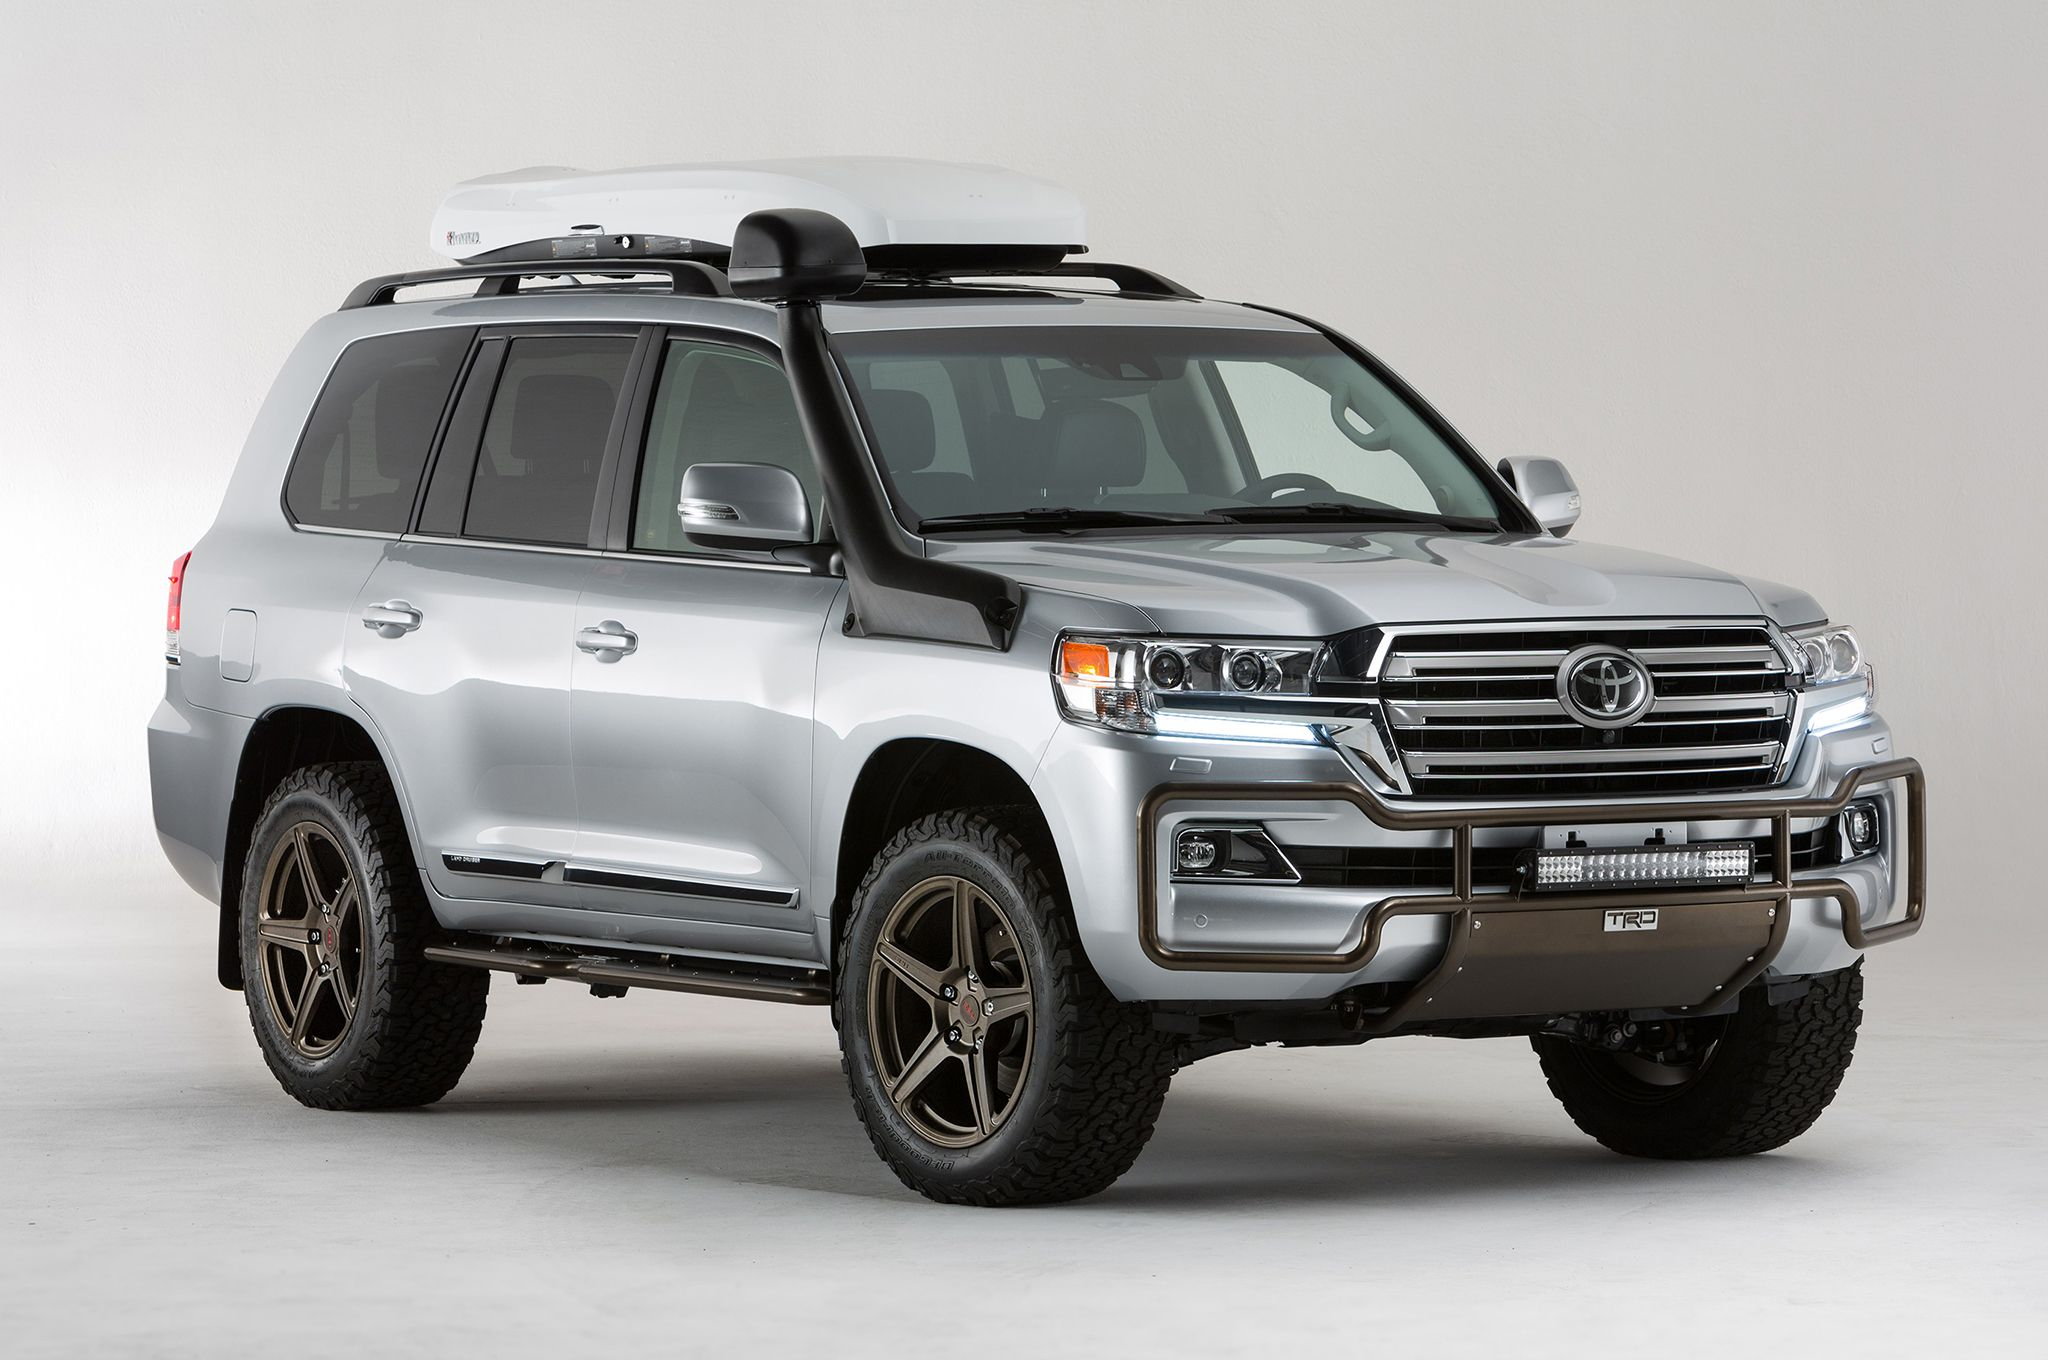 Nice wallpapers Toyota Land Cruiser 2048x1360px